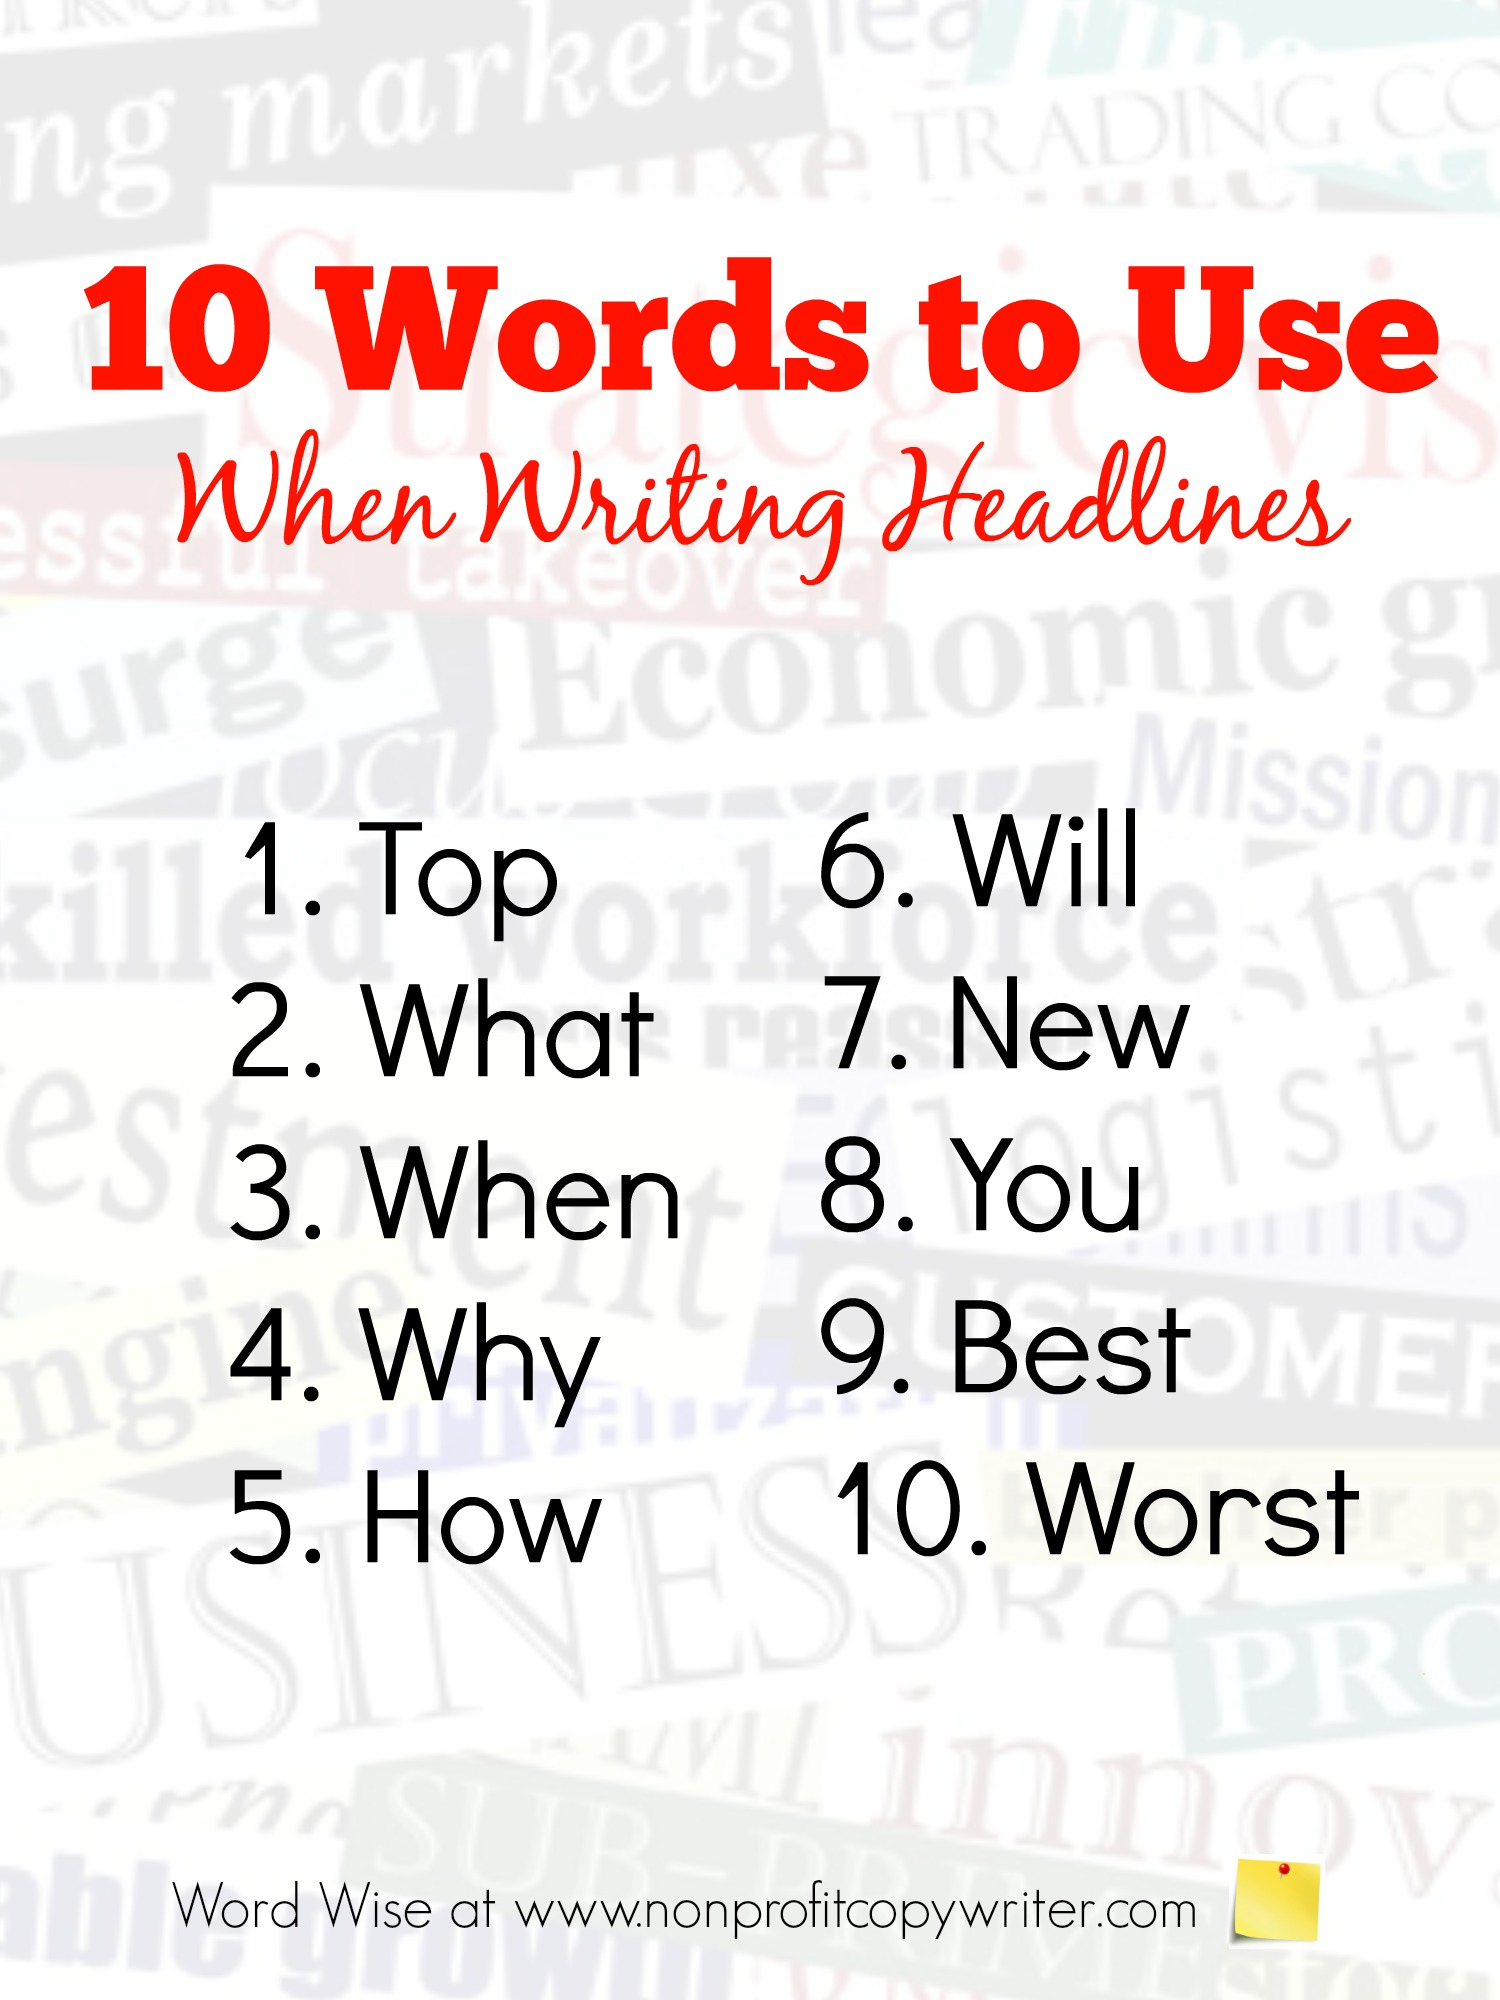 10 words to use when writing headlines with Word Wise at Nonprofit Copywriter